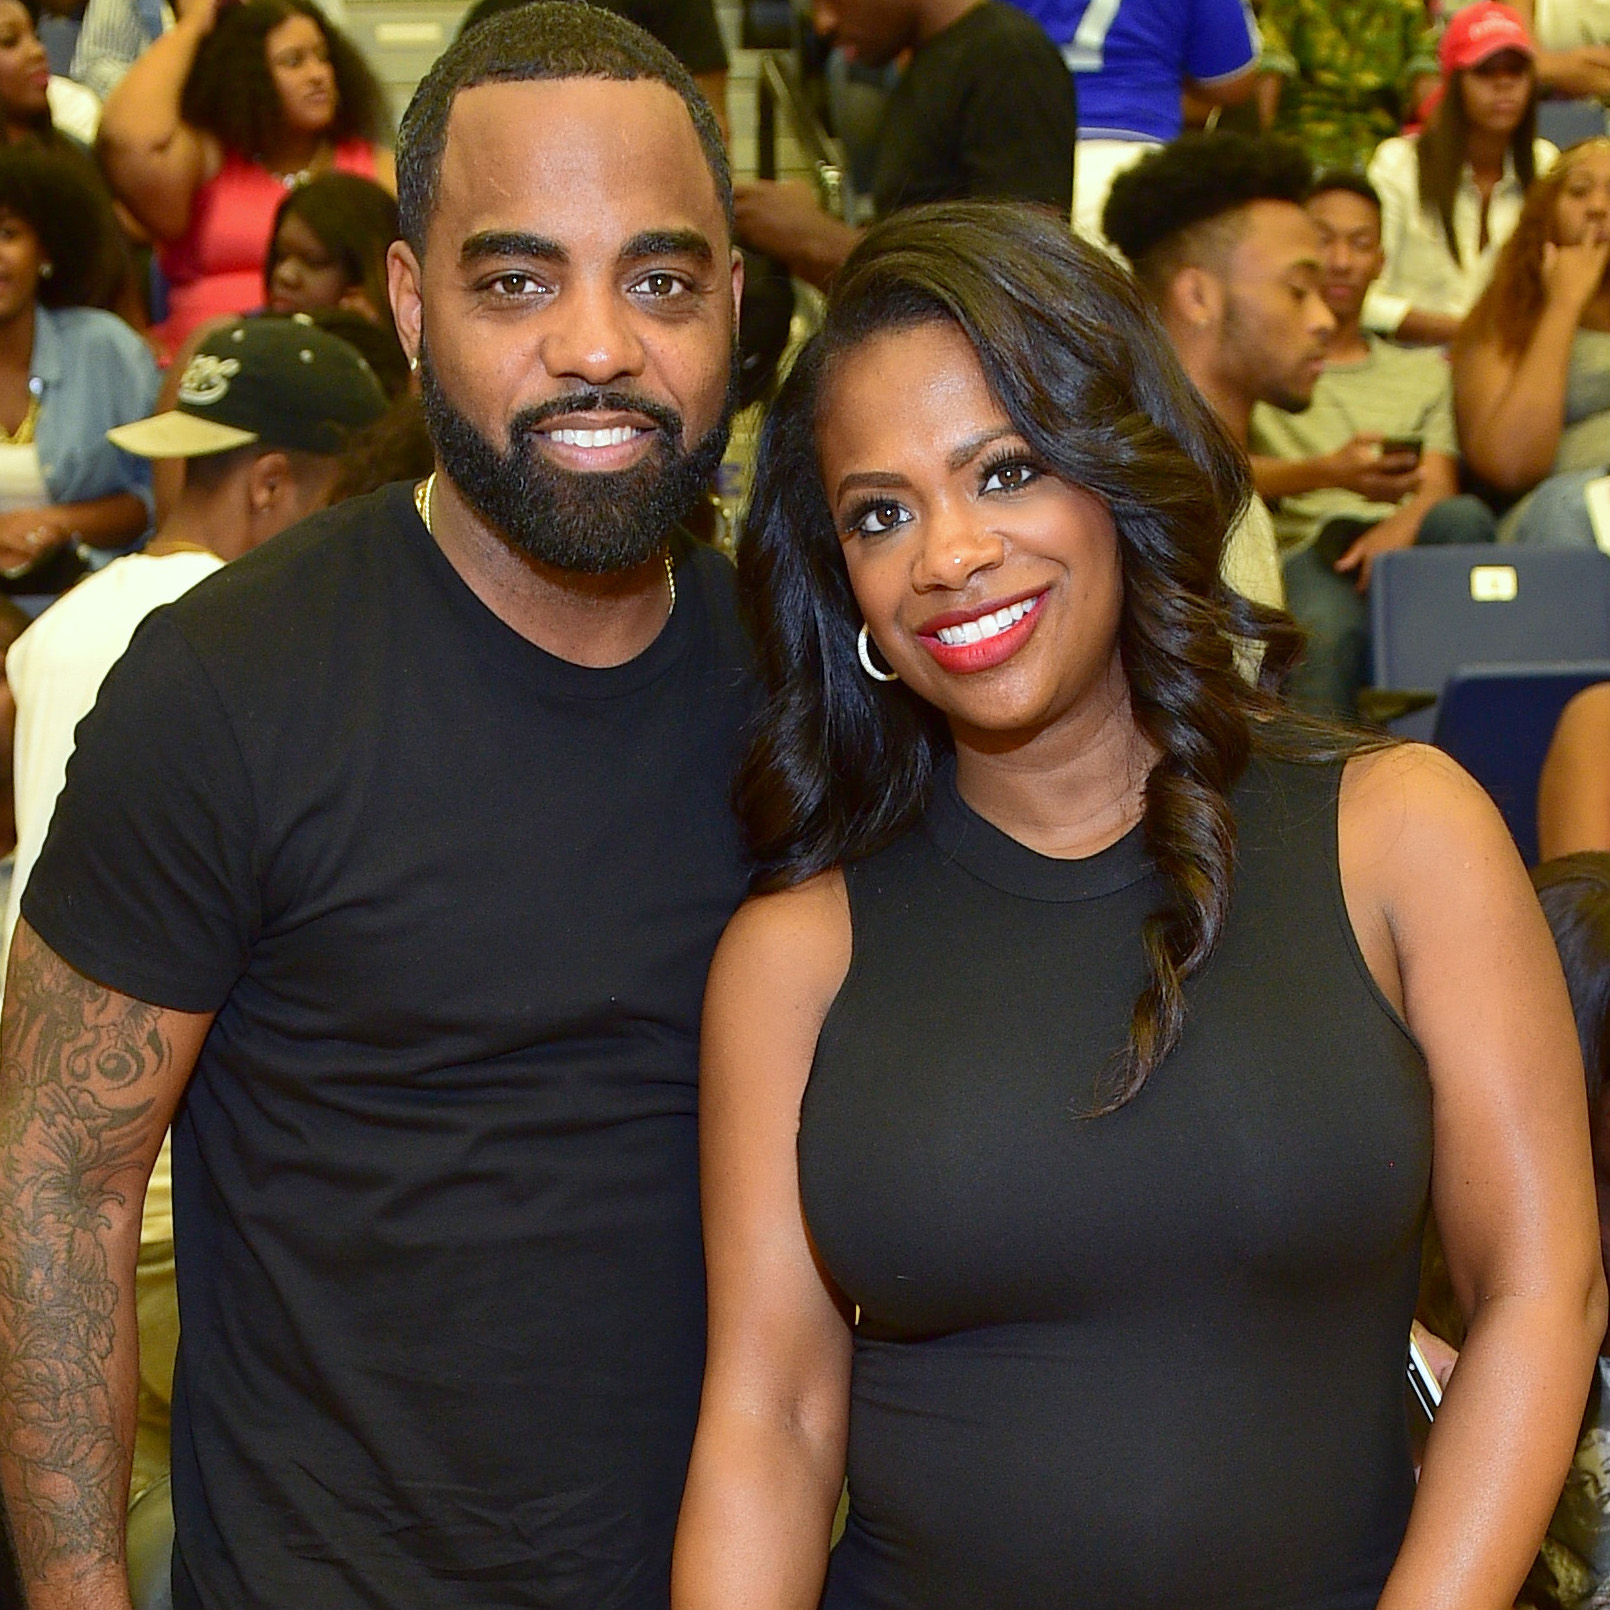 kandi-burruss-and-todd-tucker-are-living-their-dream-in-this-amazing-vacay